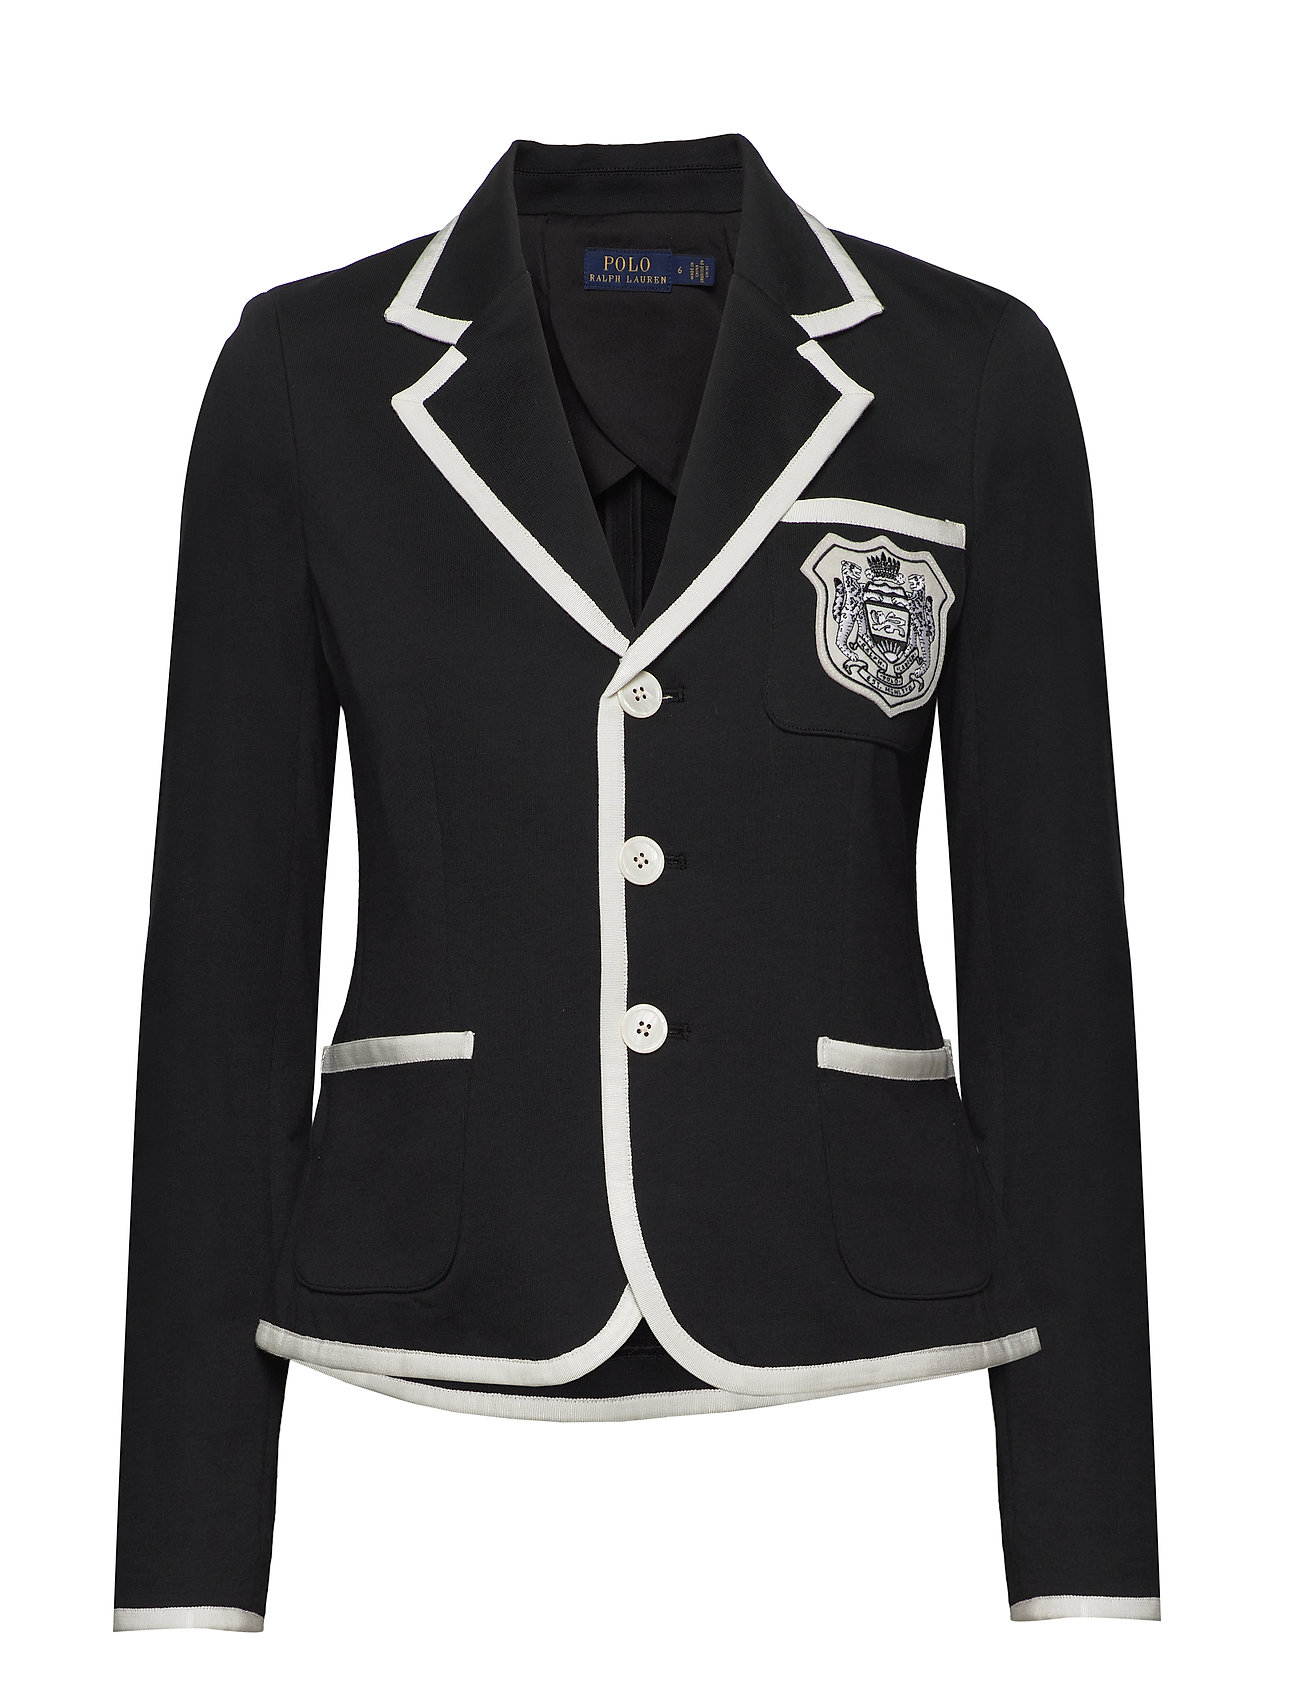 Polo Ralph Lauren Crest French Terry Blazer - POLO BLACK